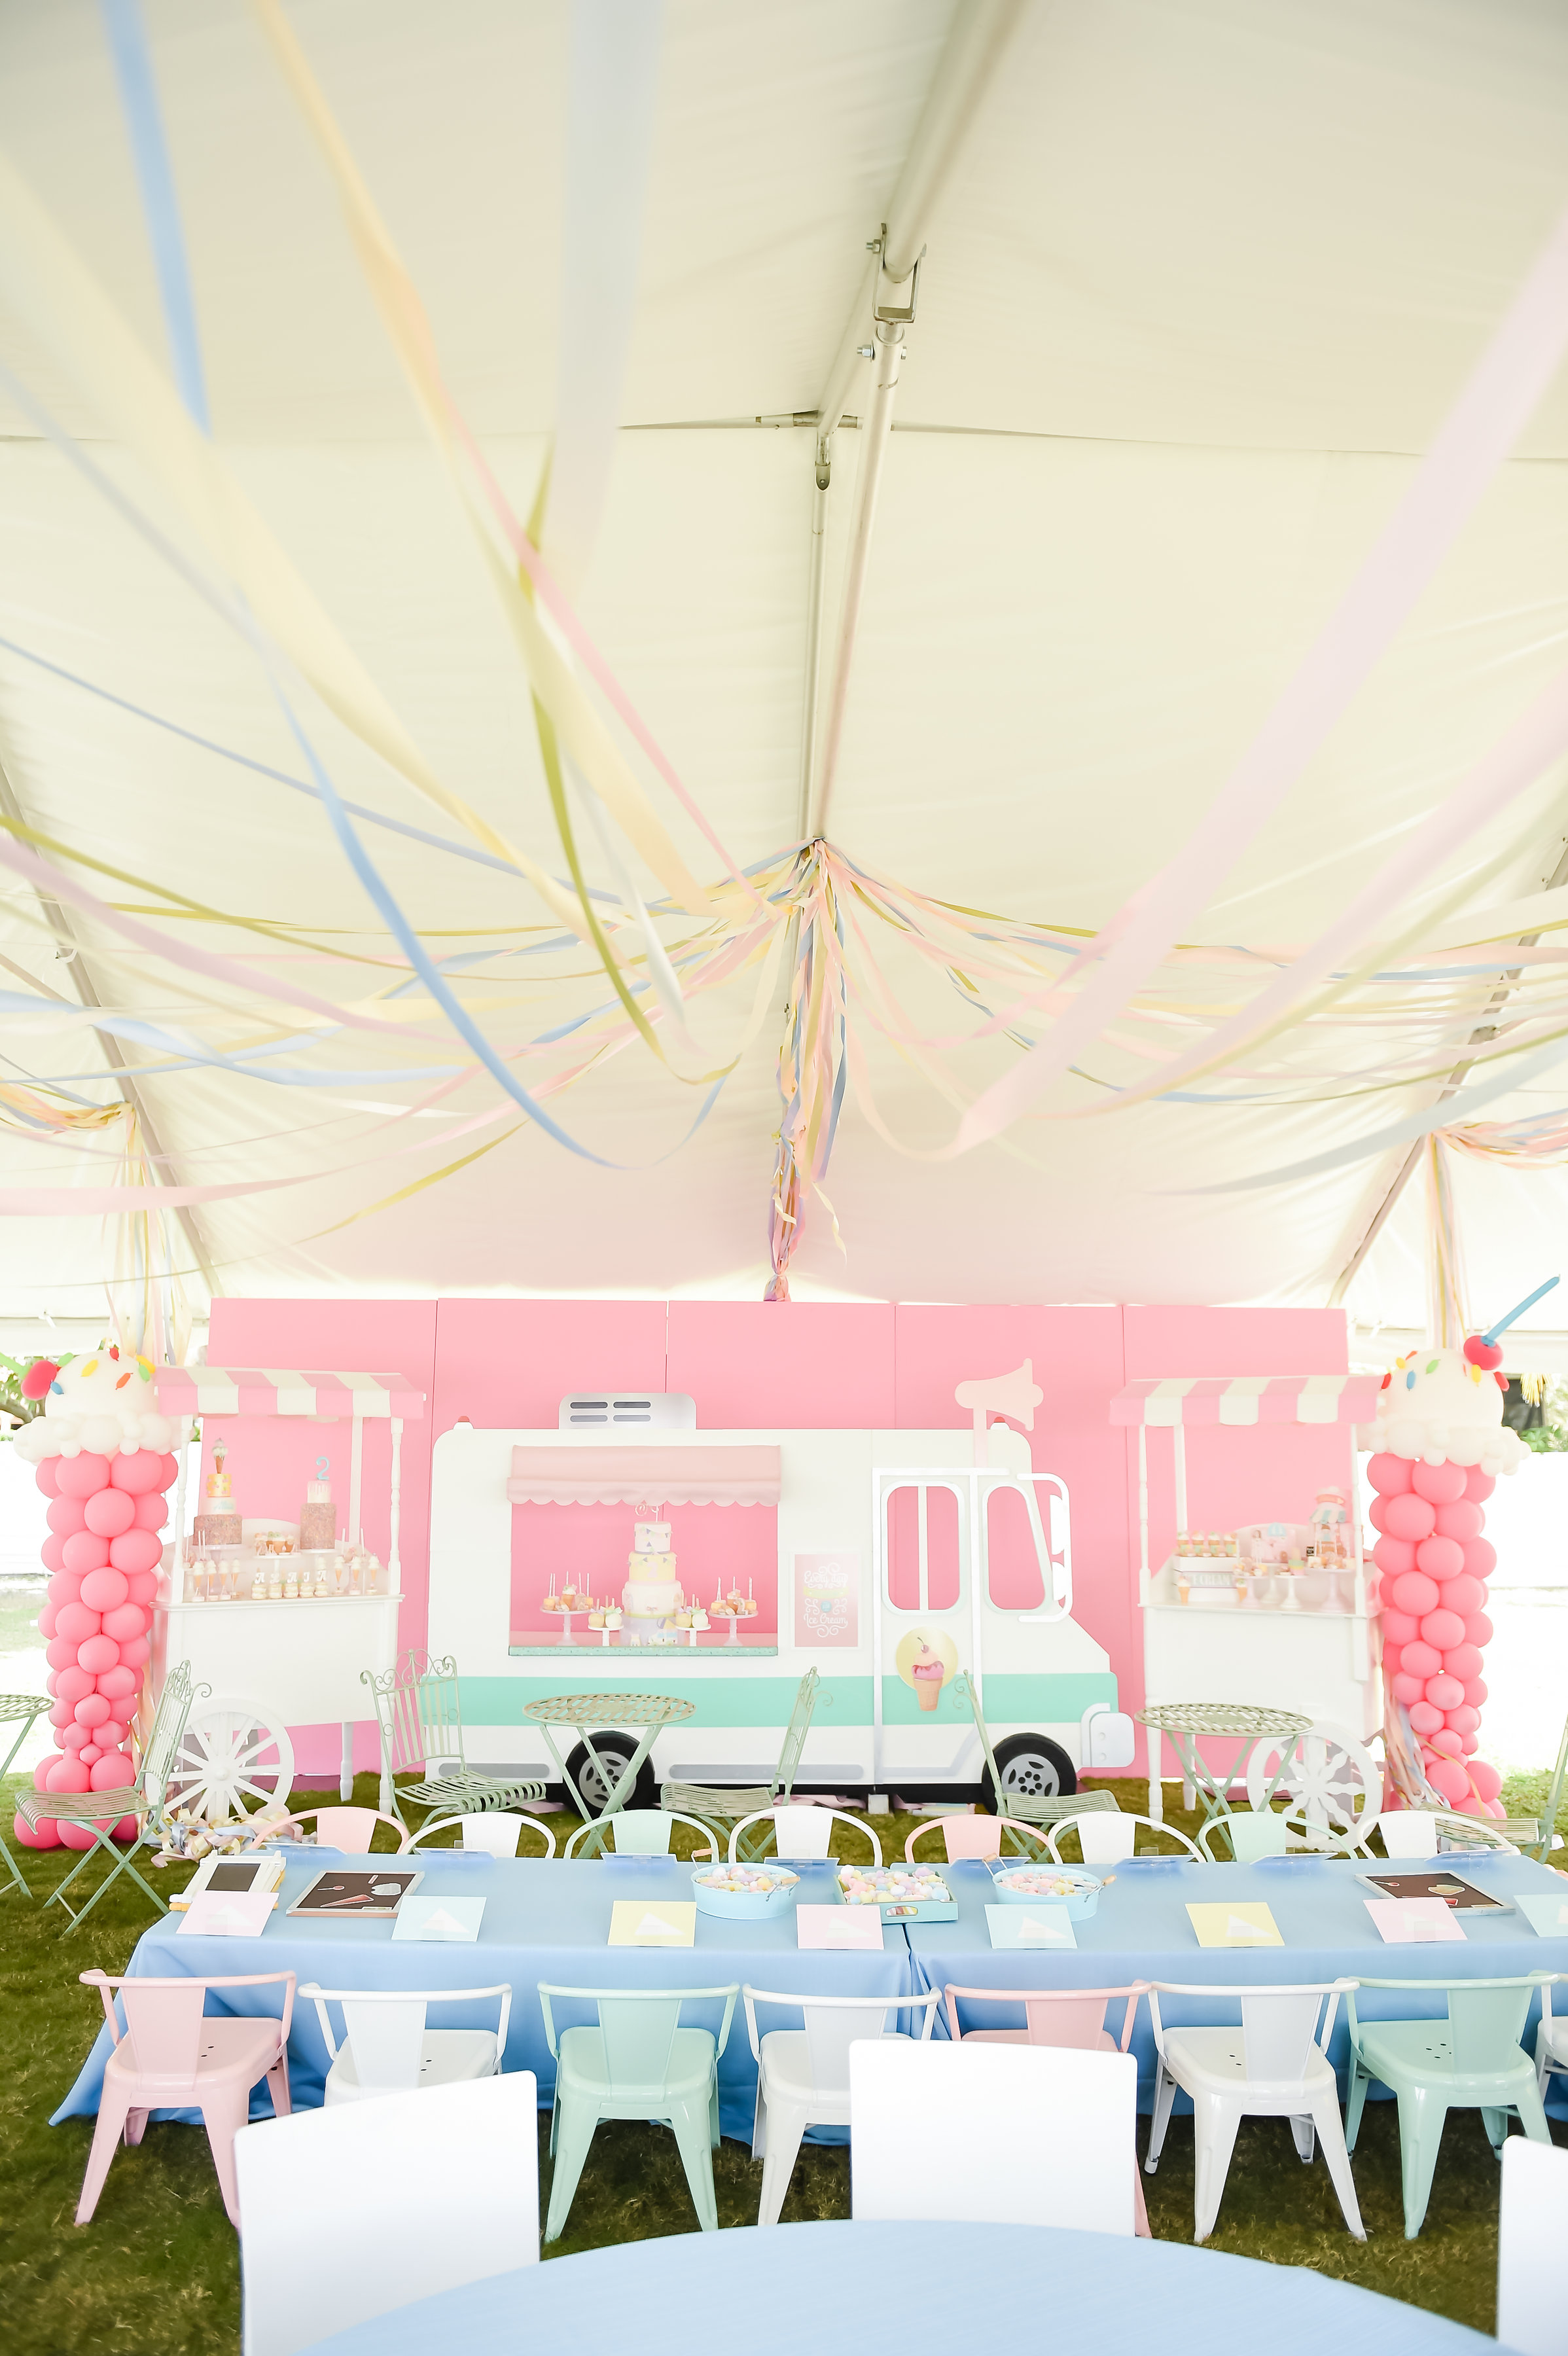 Ice Cream Birthday Party - One Inspired Party